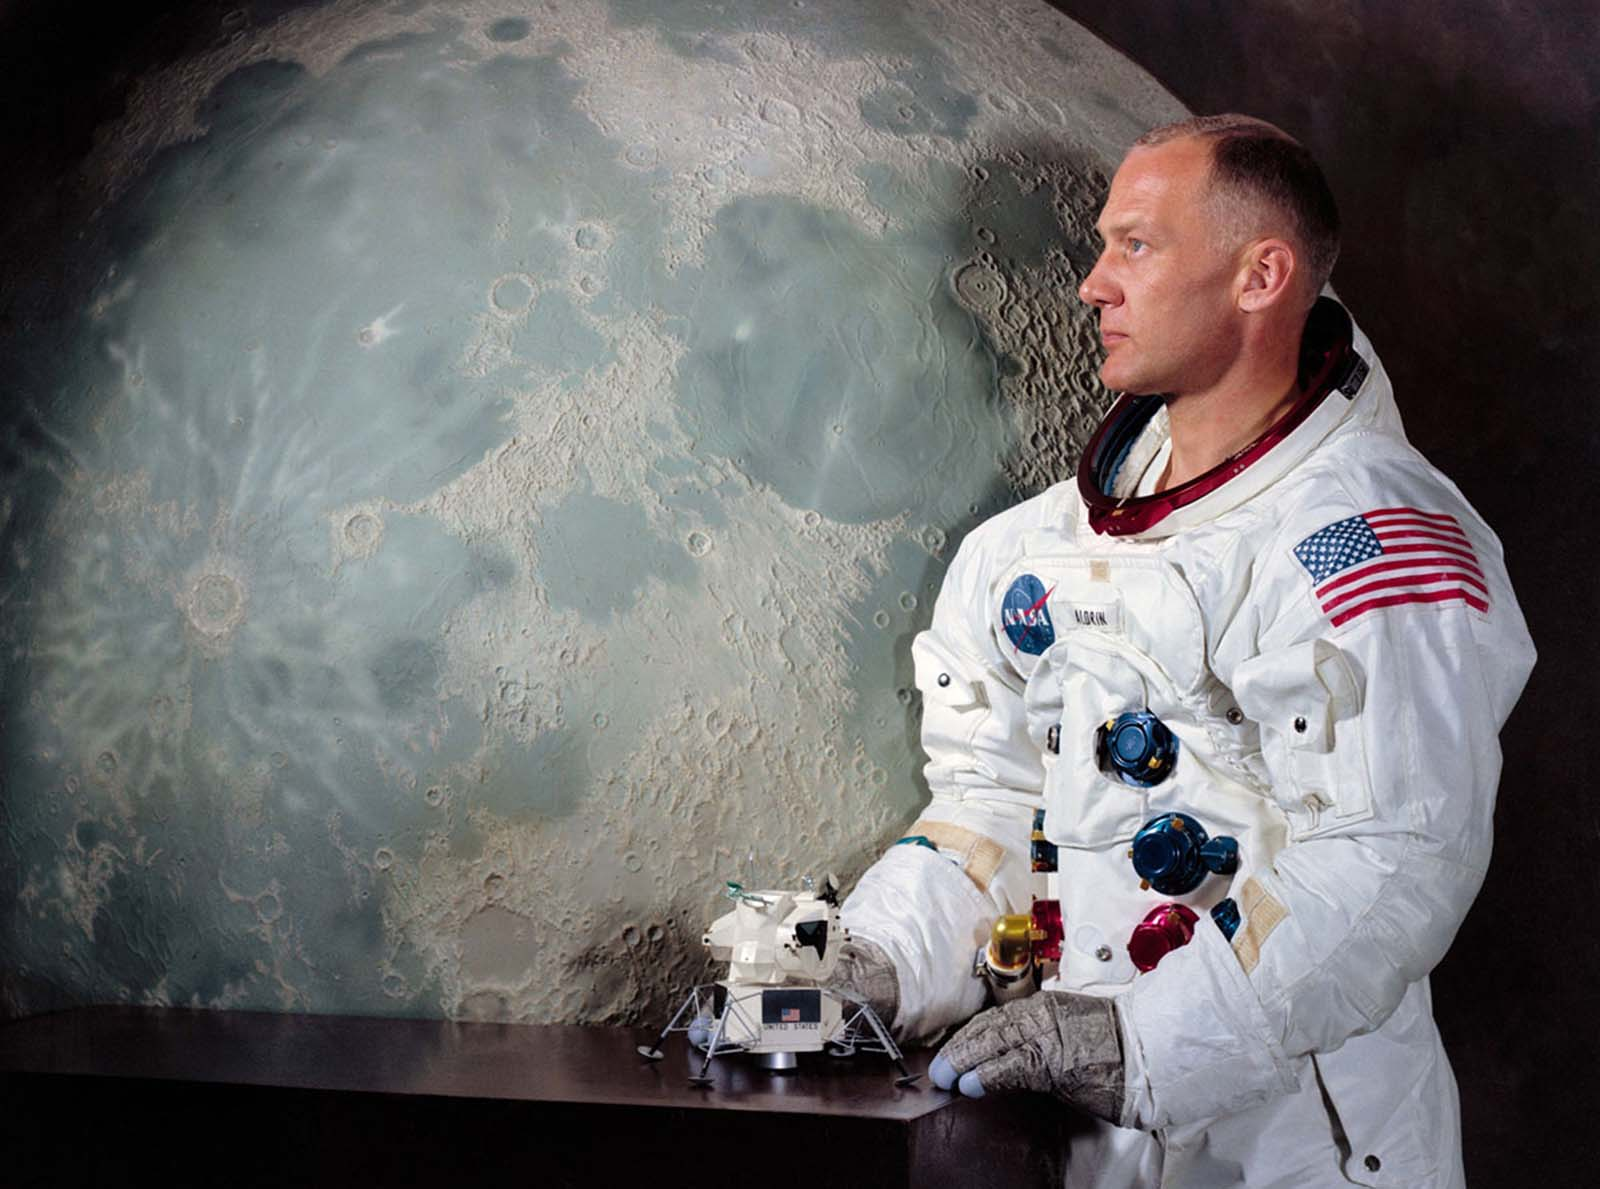 Um retrato oficial do Apollo 11 Lunar Module Piloto Buzz Aldrin.